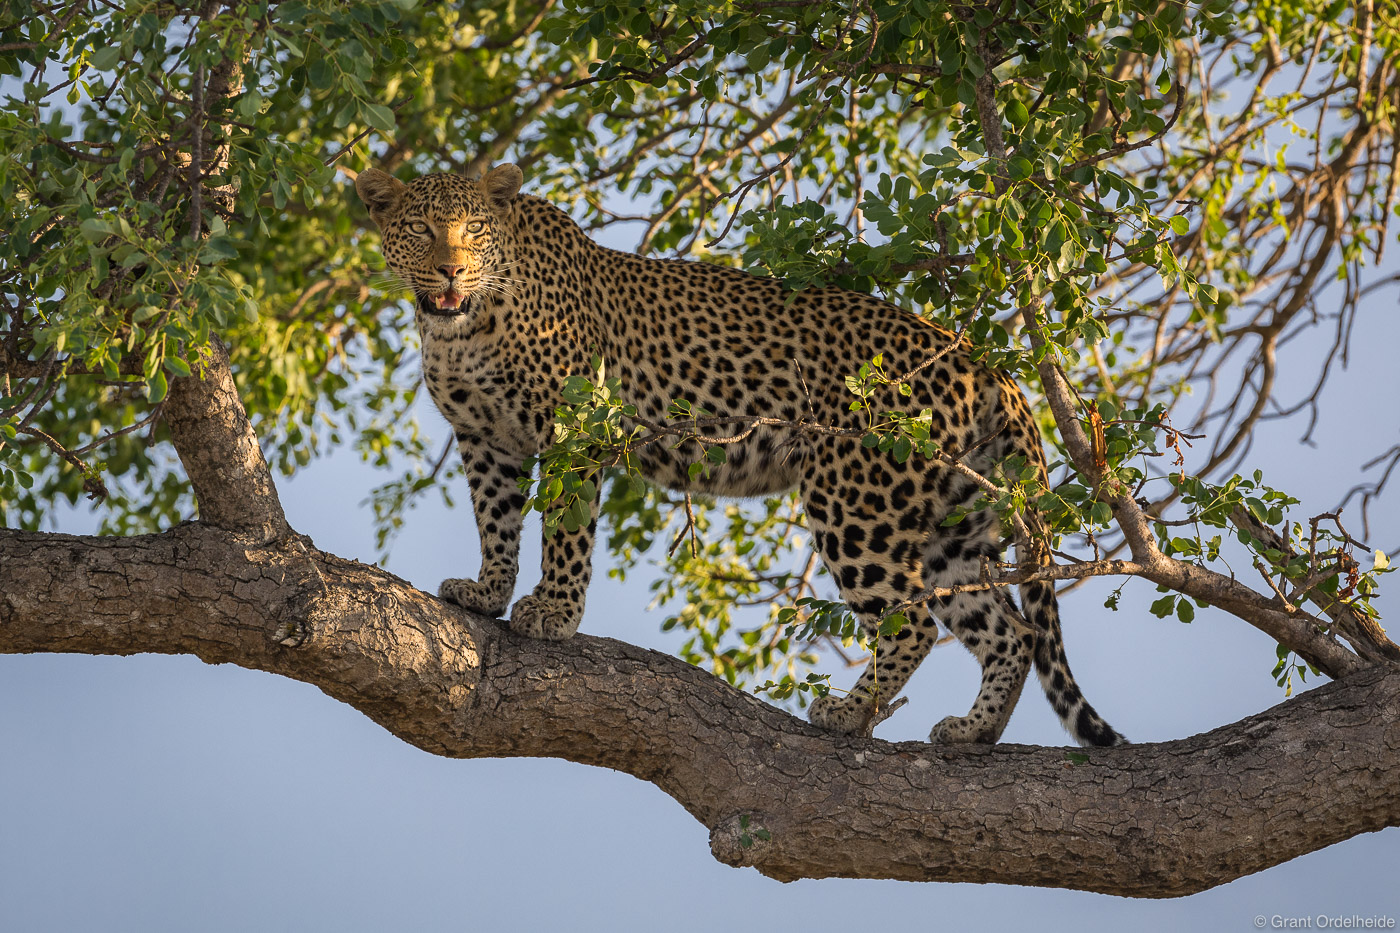 A female leopard standing on a branch high in a tree.